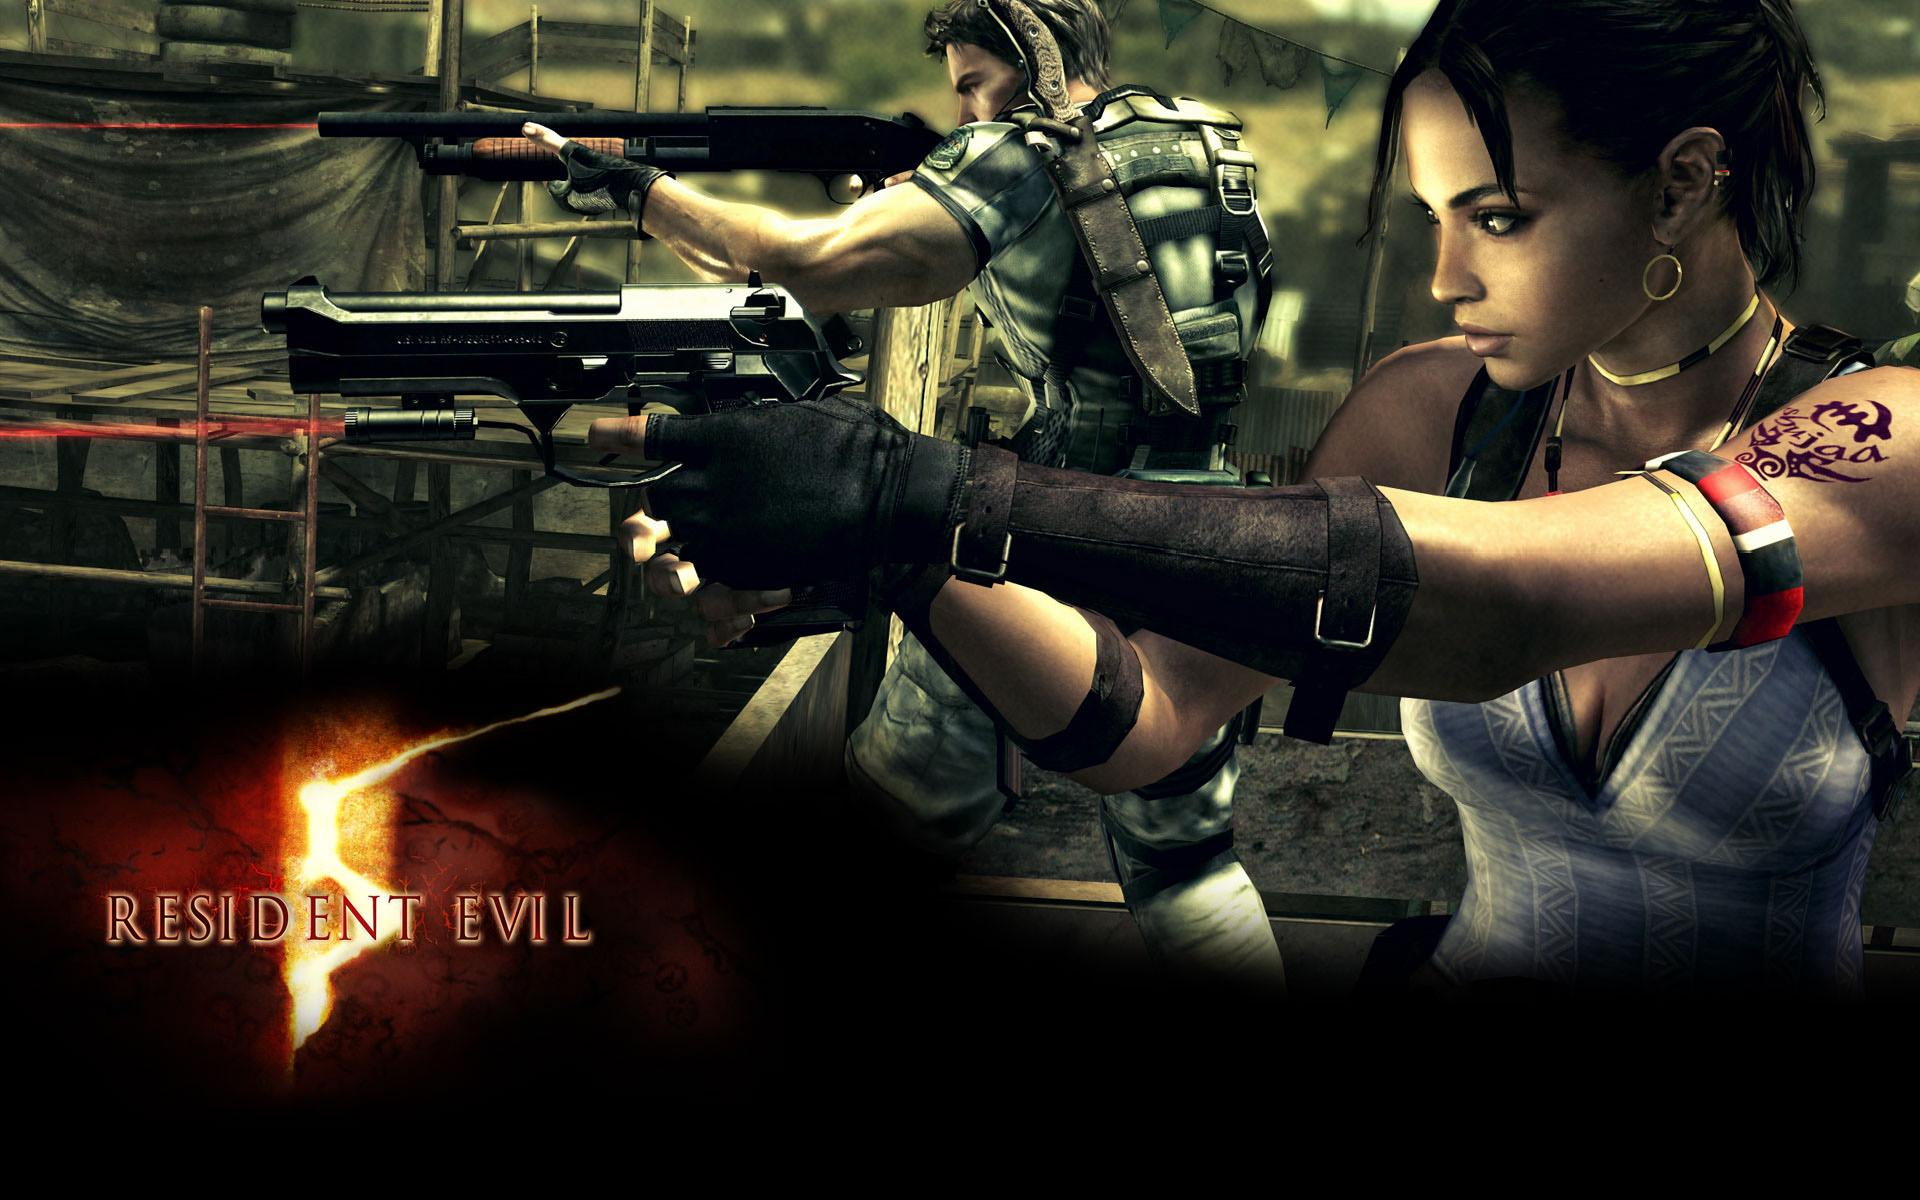 Resident Evil 5 3 Wallpapers HD Wallpapers 1920x1200